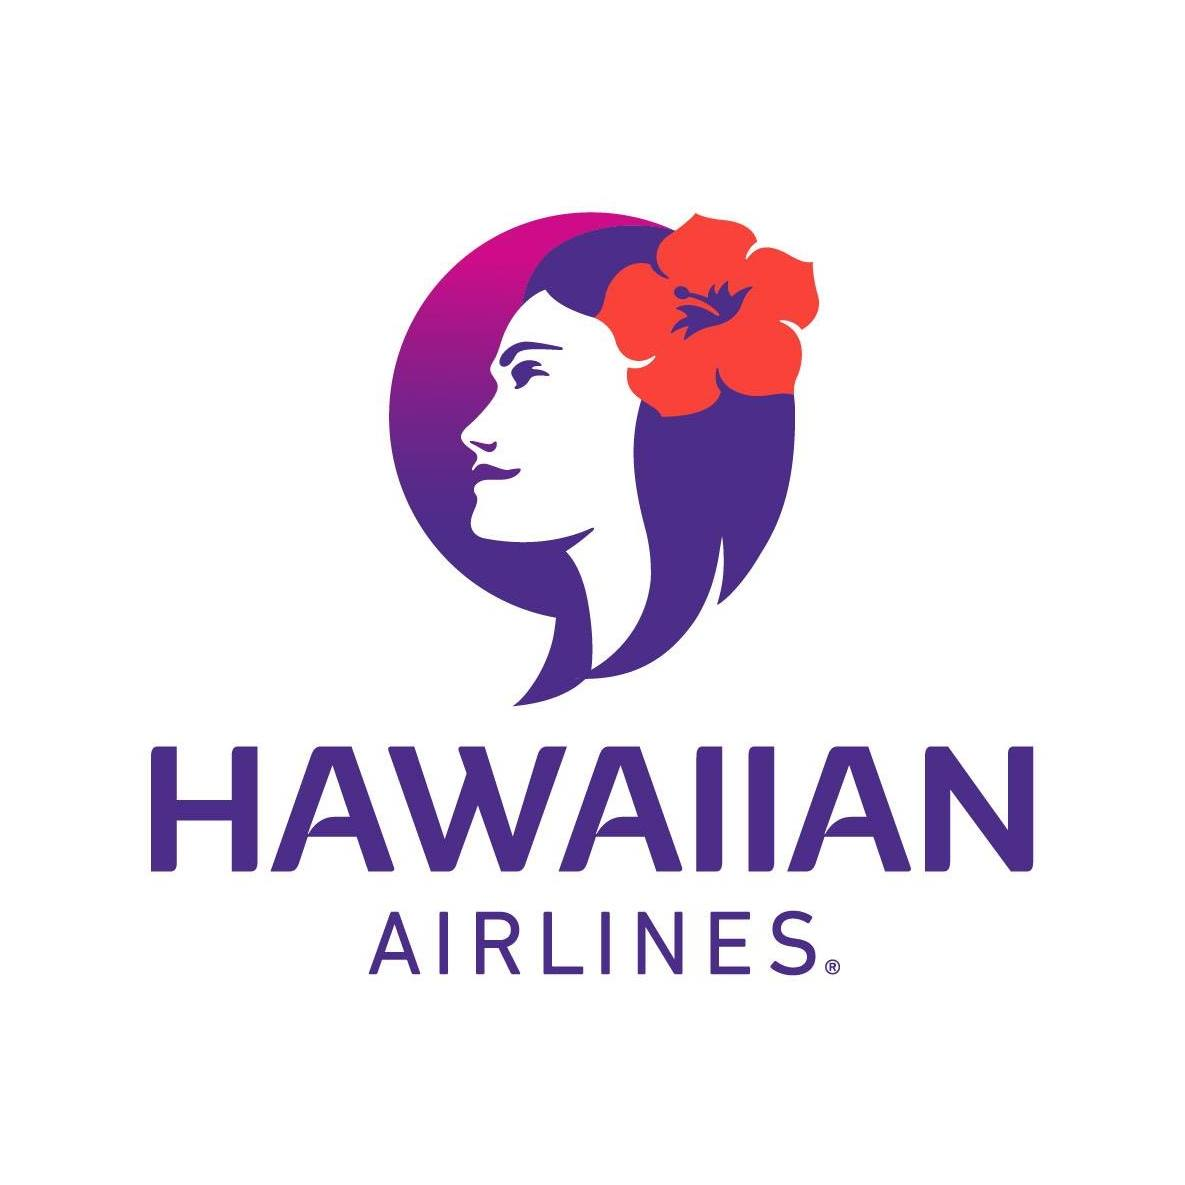 hawaiian_airlines.jpg